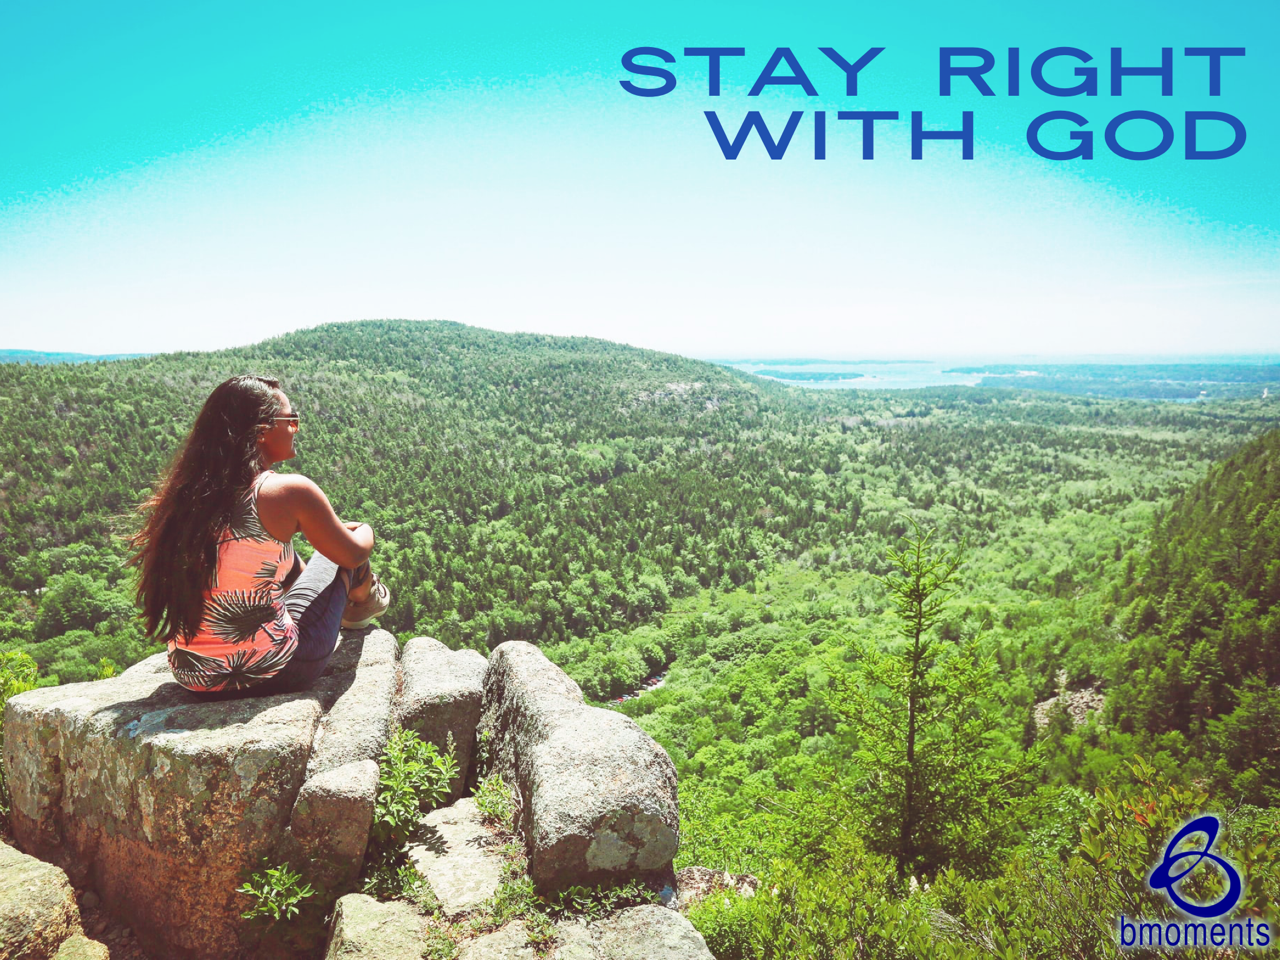 Stay Right with God: Resist the Desire to Be Right